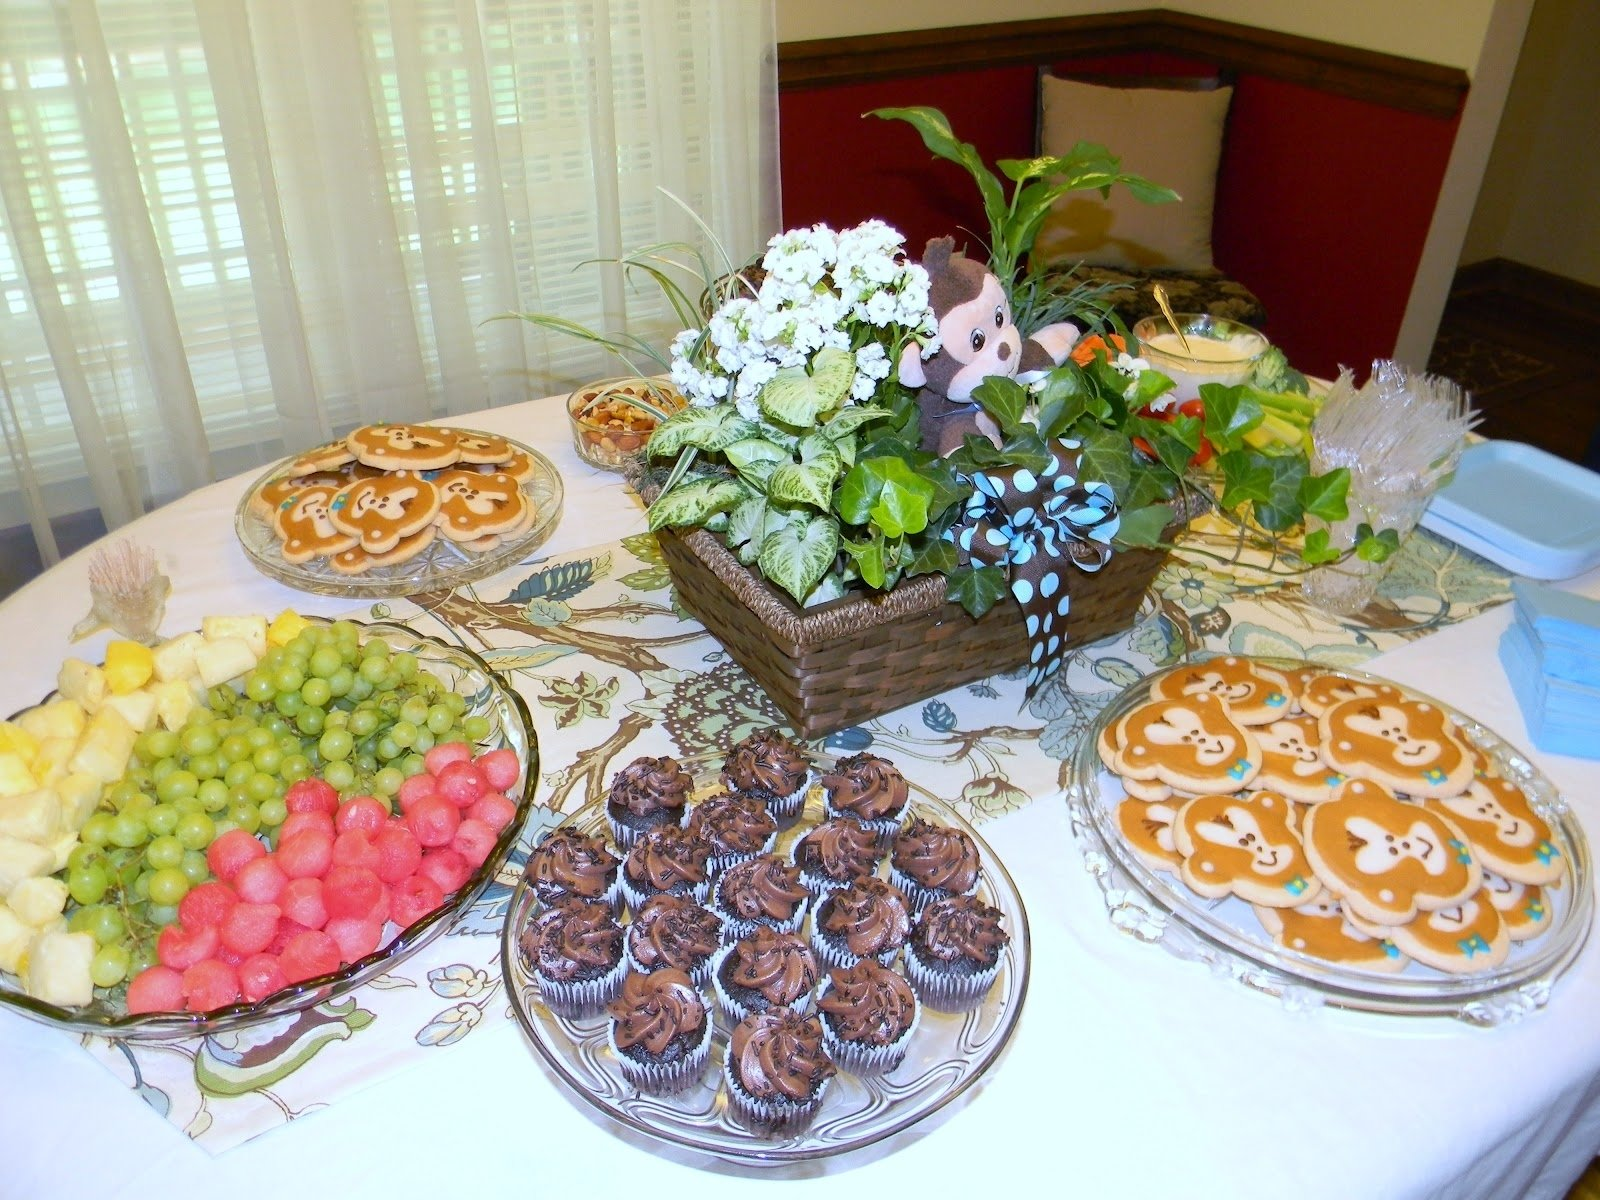 10 Ideal Baby Shower Menu Ideas On A Budget baby shower food ideas baby shower foods on a budget 3 2020